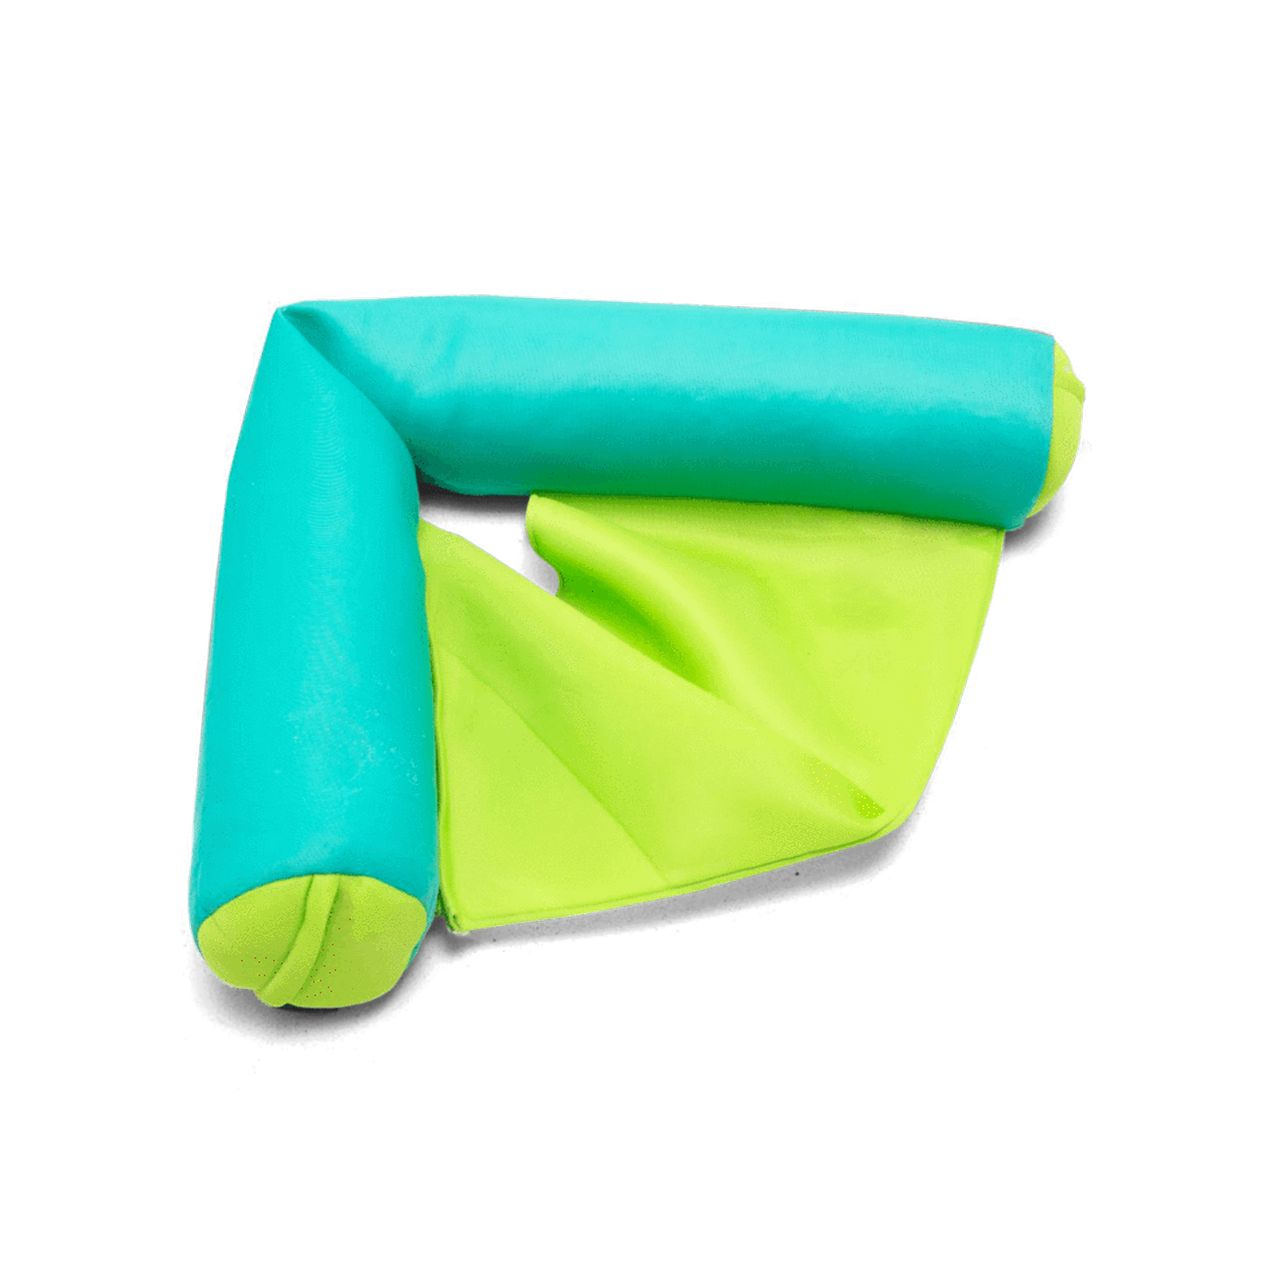 Big Joe Noodle Sling Pool Float - Aqua/Green